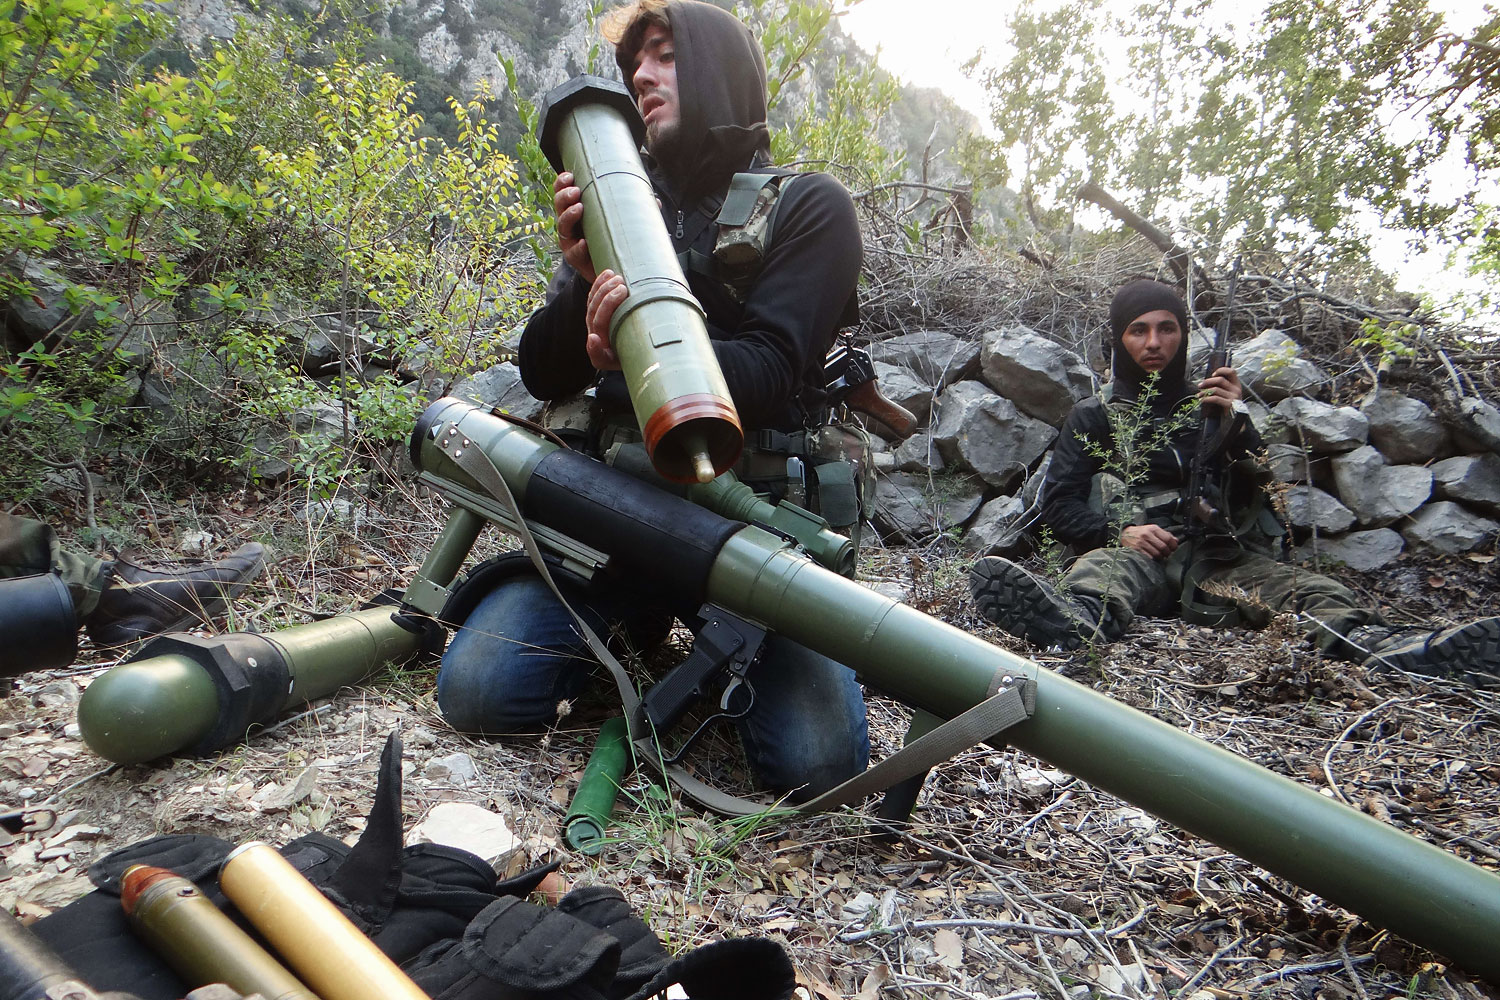 A rebel fighter checks a launcher near the village of Kessab and the border crossing with Turkey, in the northwestern province of Latakia, on March 23, 2014.  Rebels seized Kessab a day later.